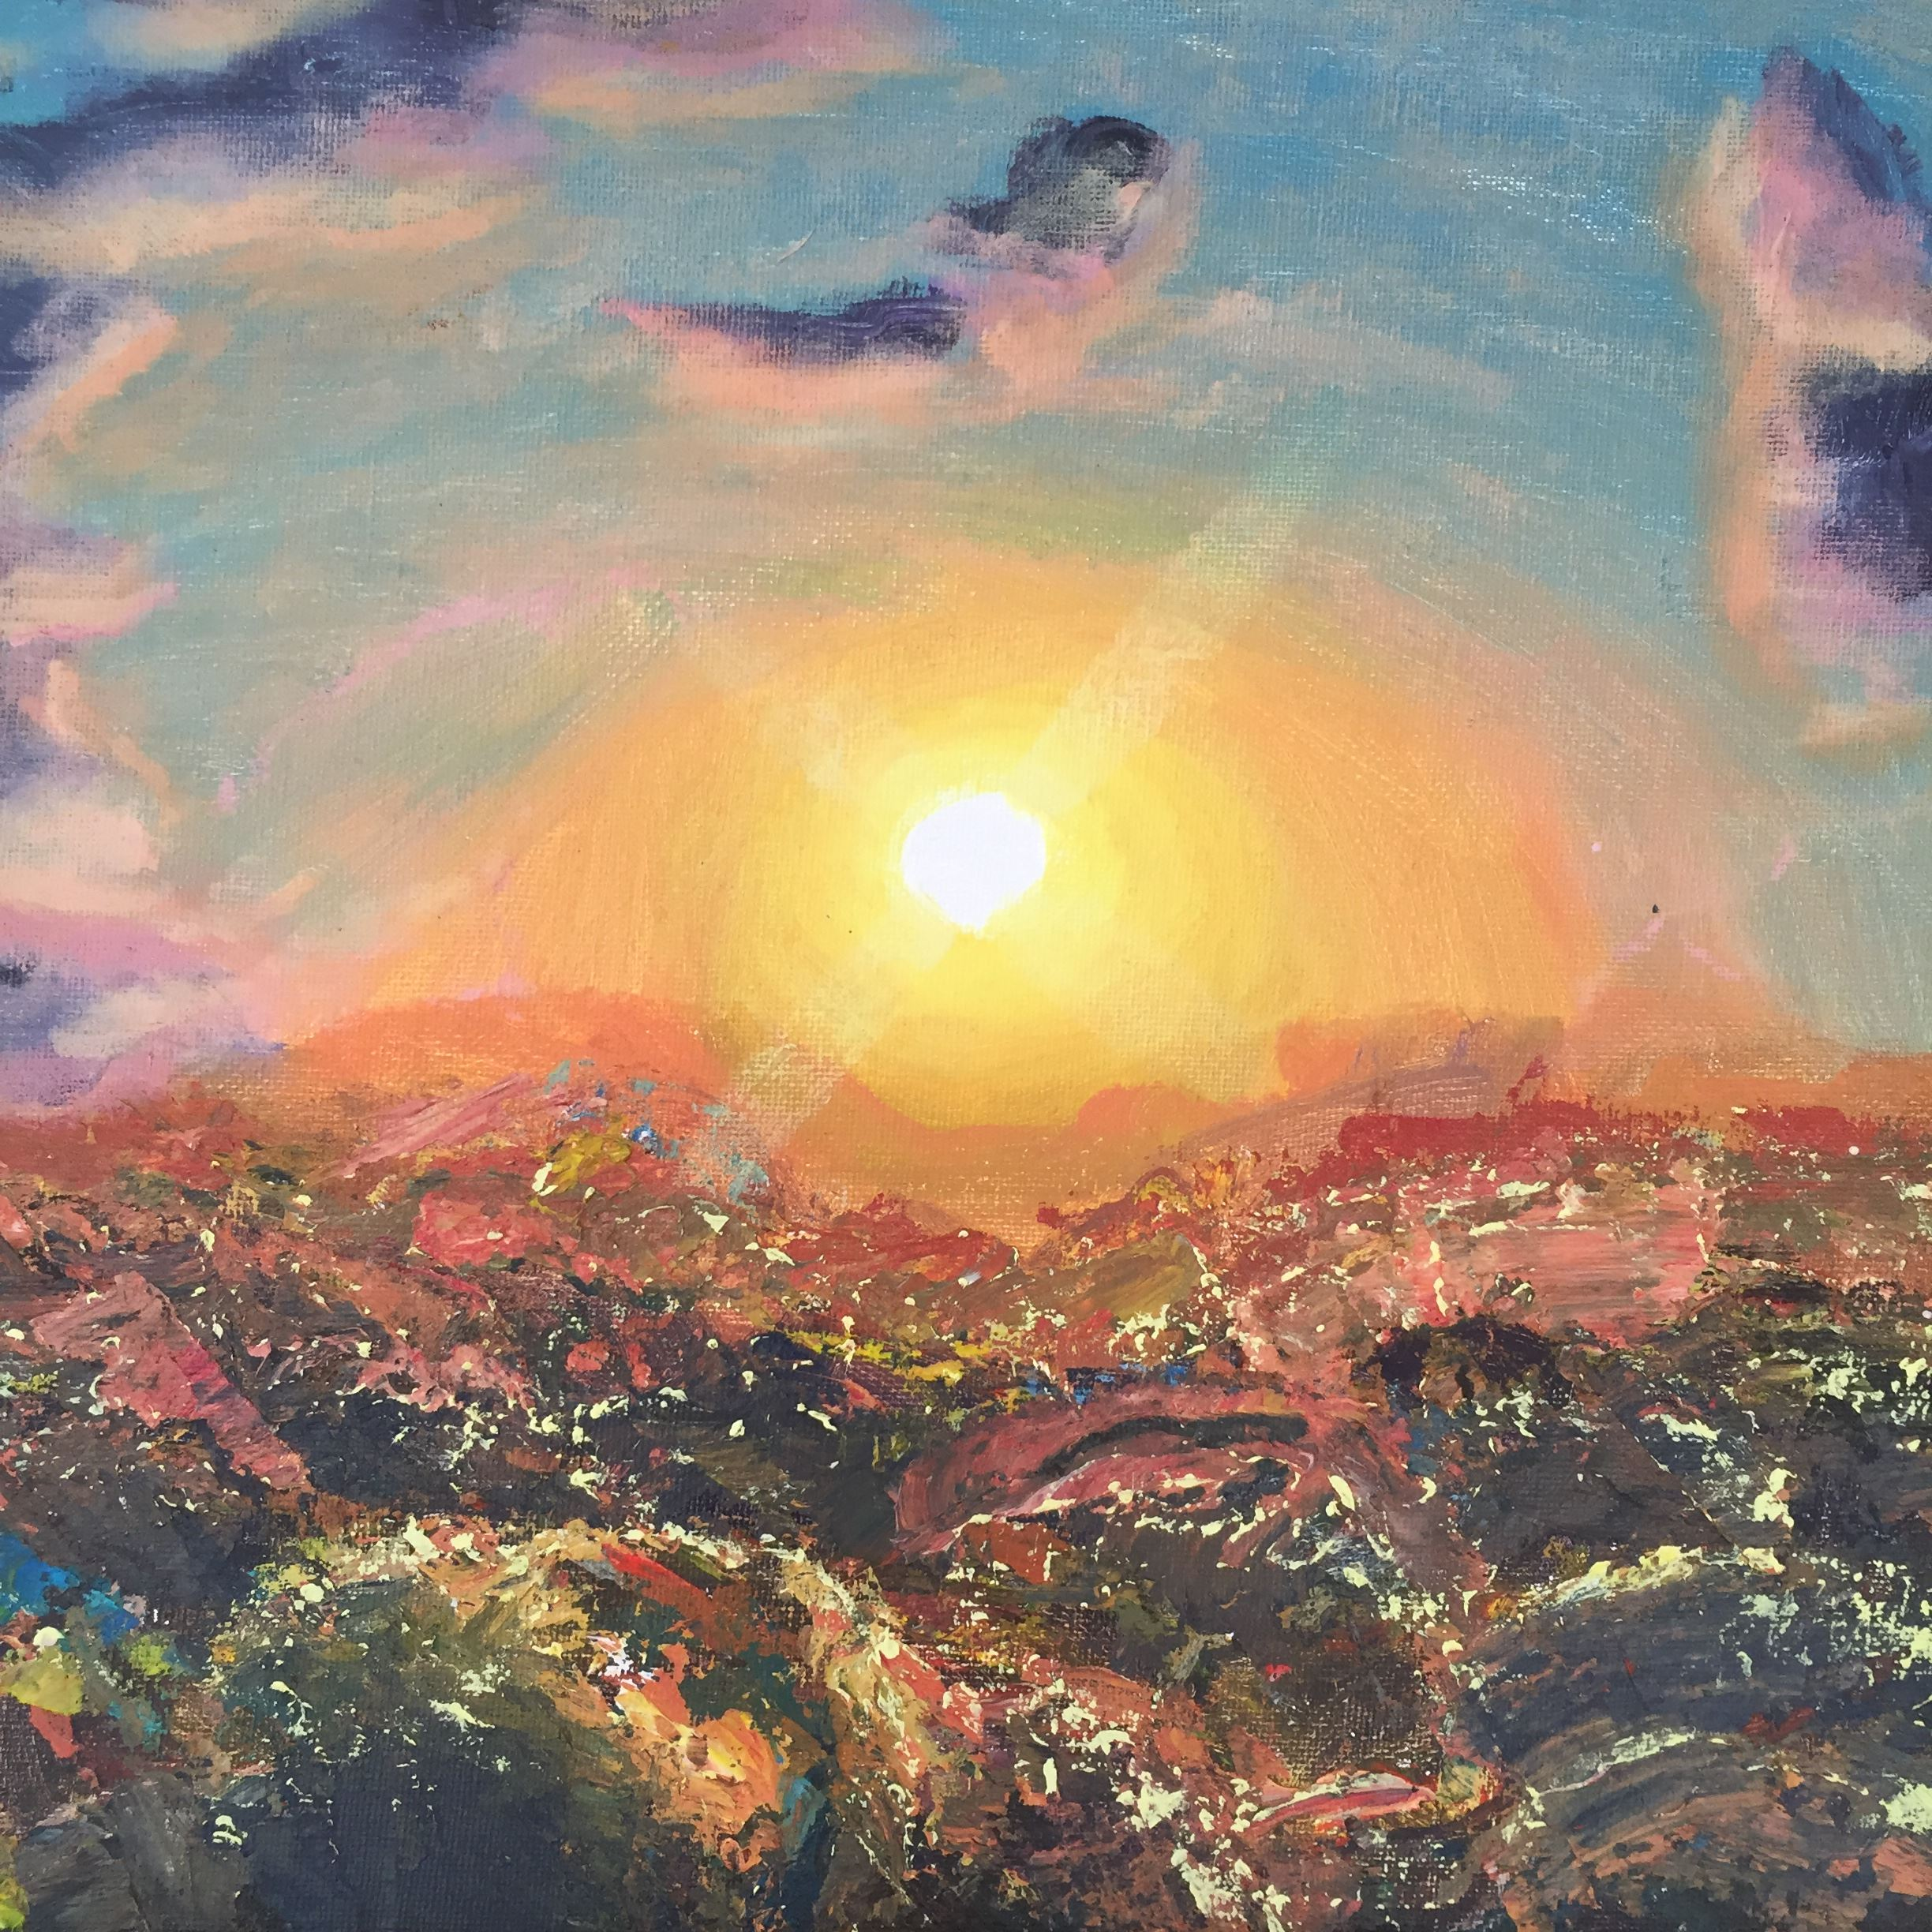 Painting of filed and sunset